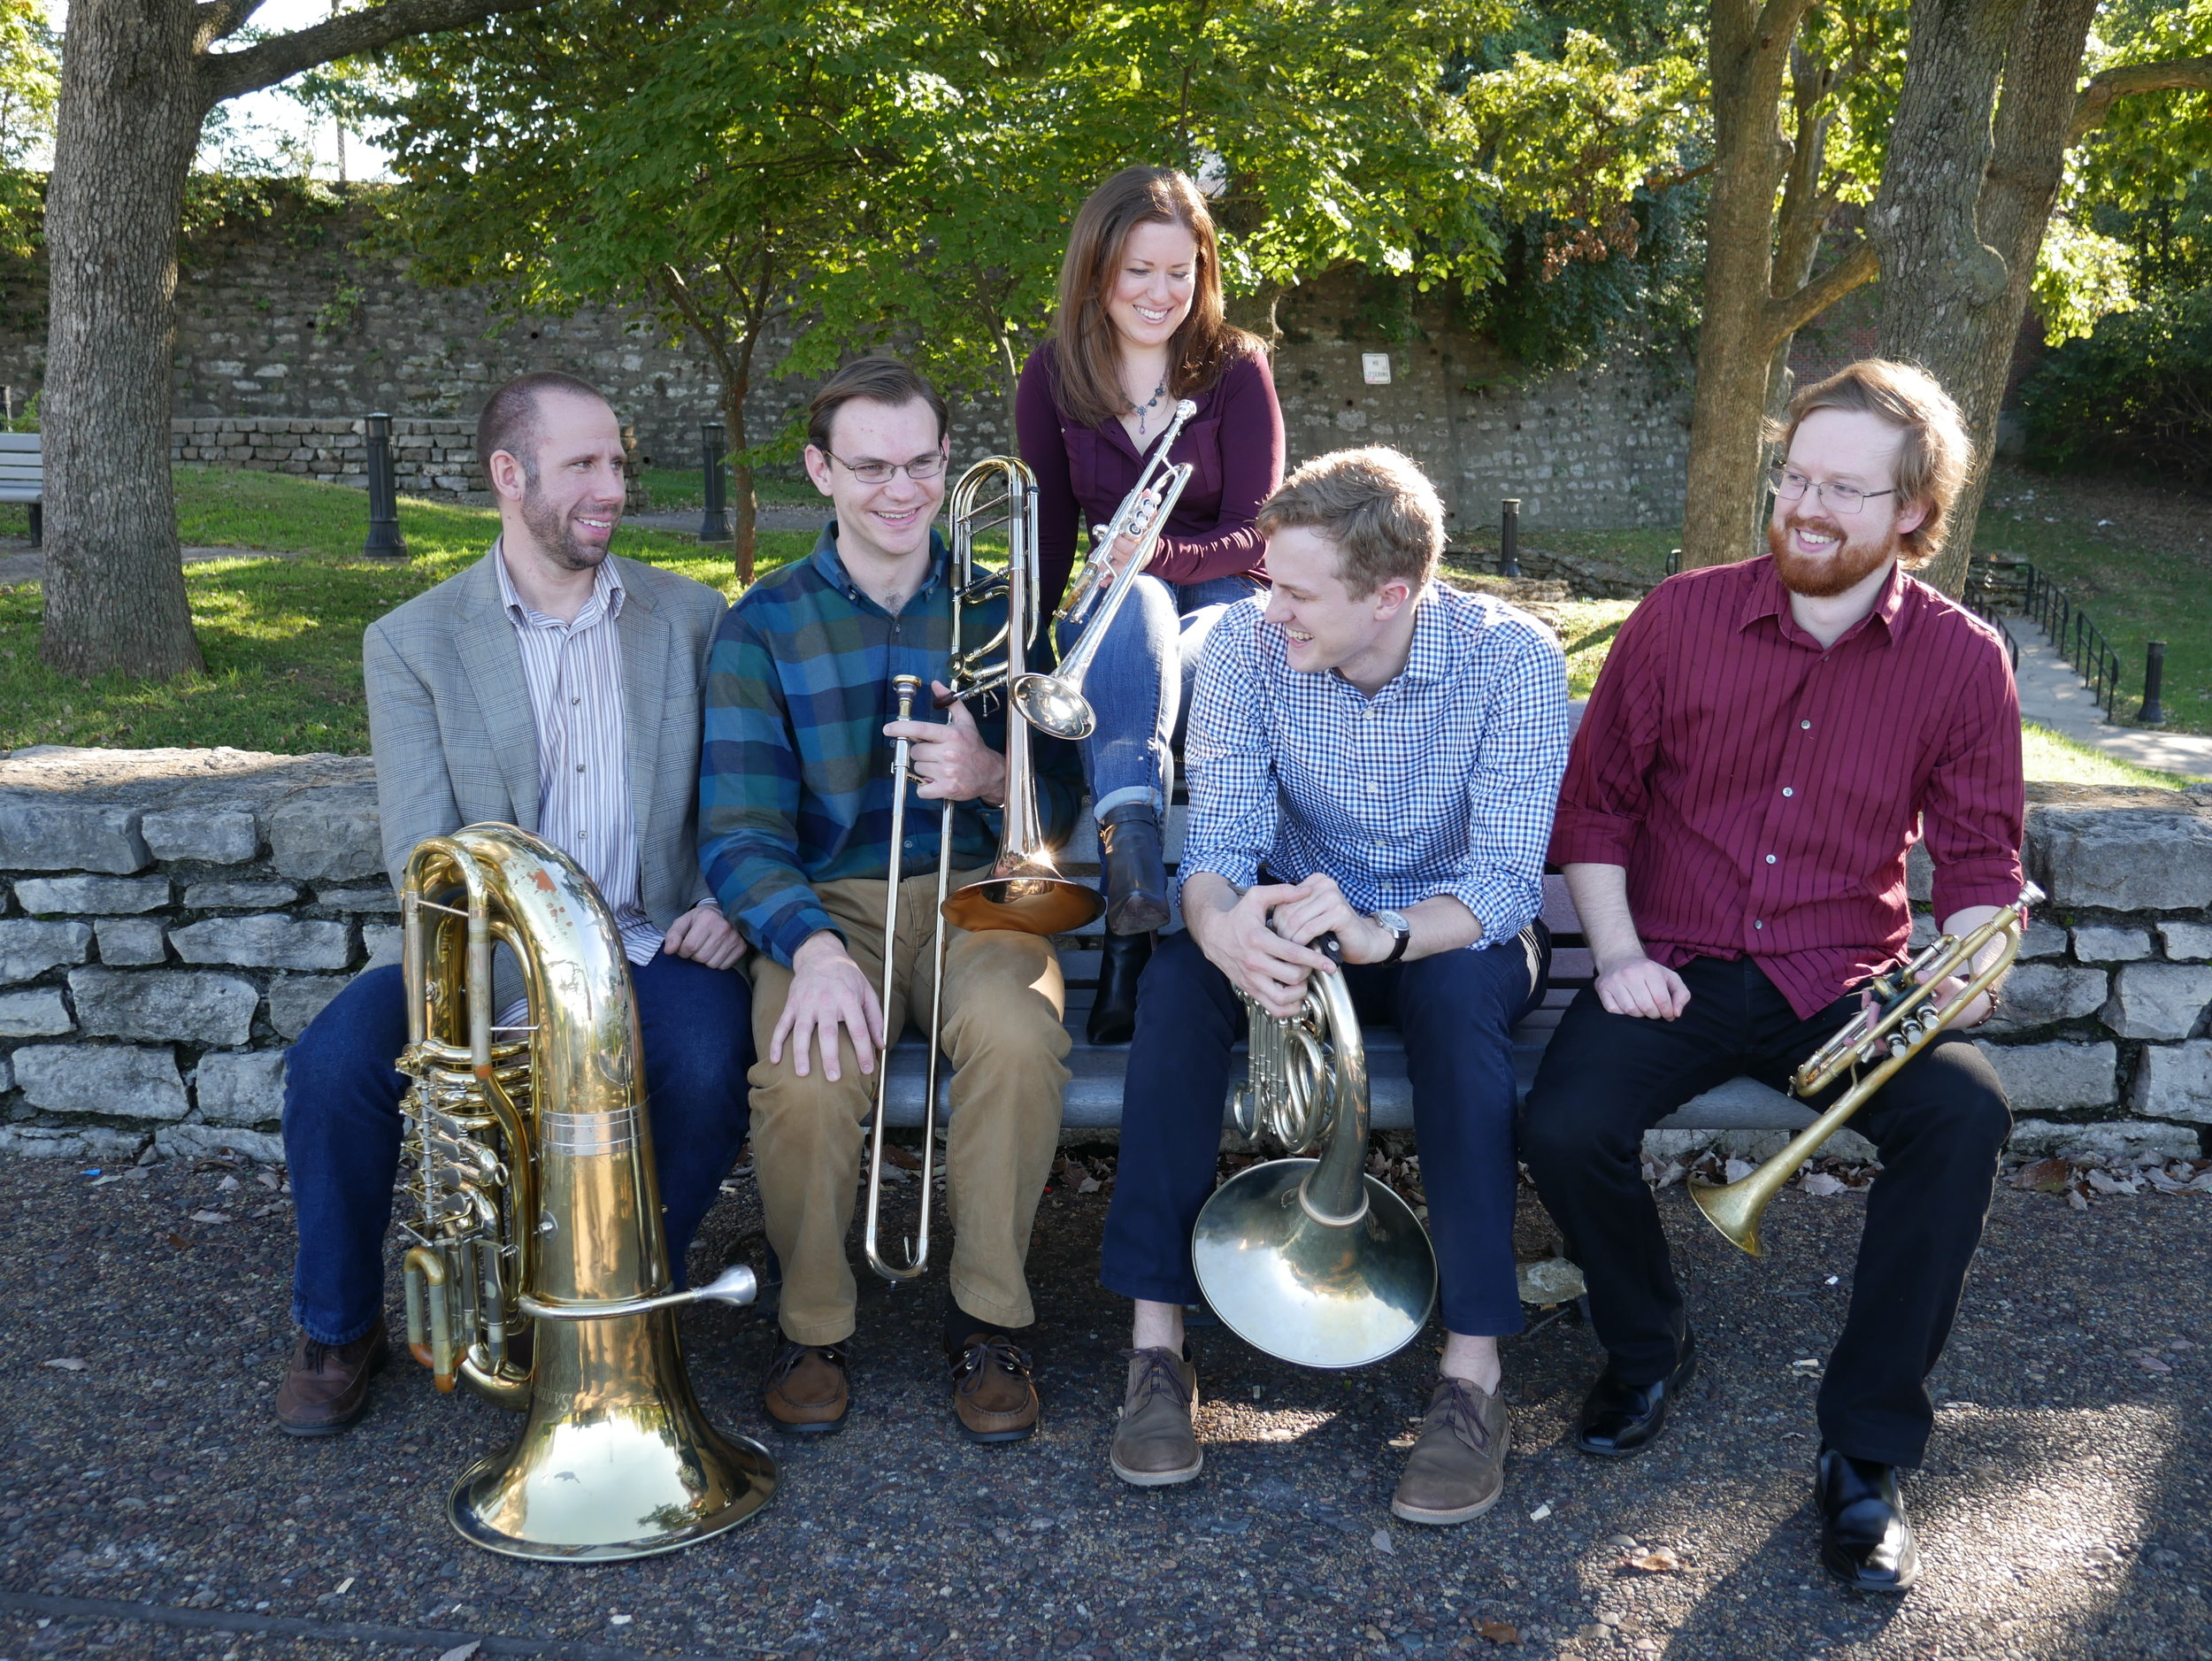 9-10 AM - Ångström Brass Quintet led by Patrick Doyle, Kansas City (studio)